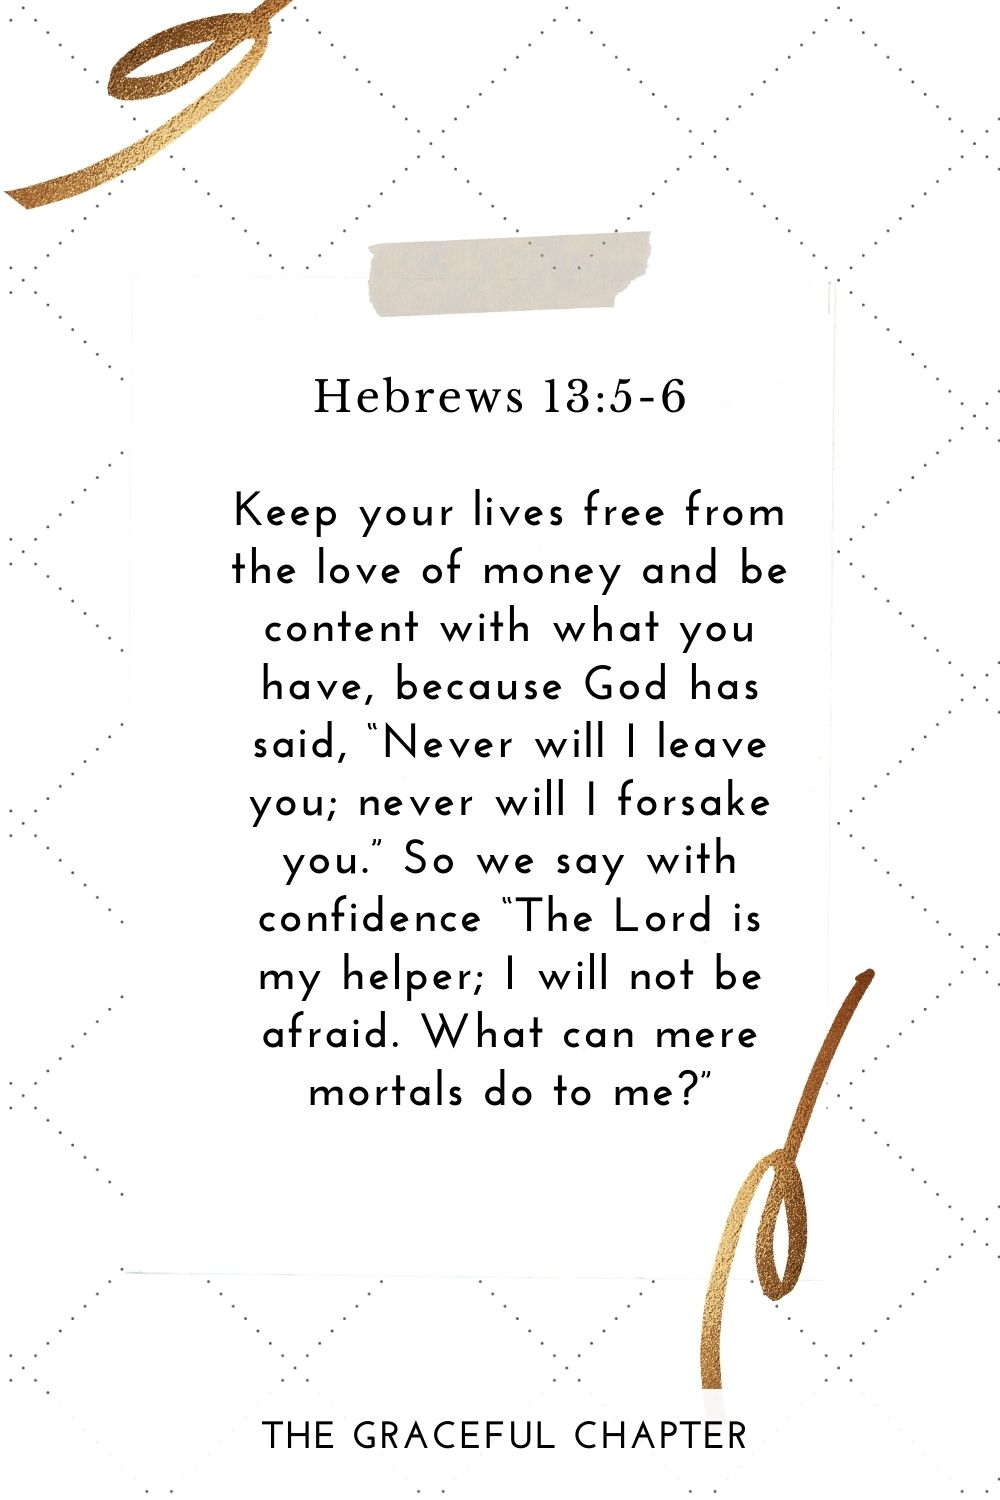 "Keep your lives free from the love of money and be content with what you have, because God has said, ""Never will I leave you; never will I forsake you."" So we say with confidence ""The Lord is my helper; I will not be afraid. What can mere mortals do to me?"" Hebrews 13:5-6"